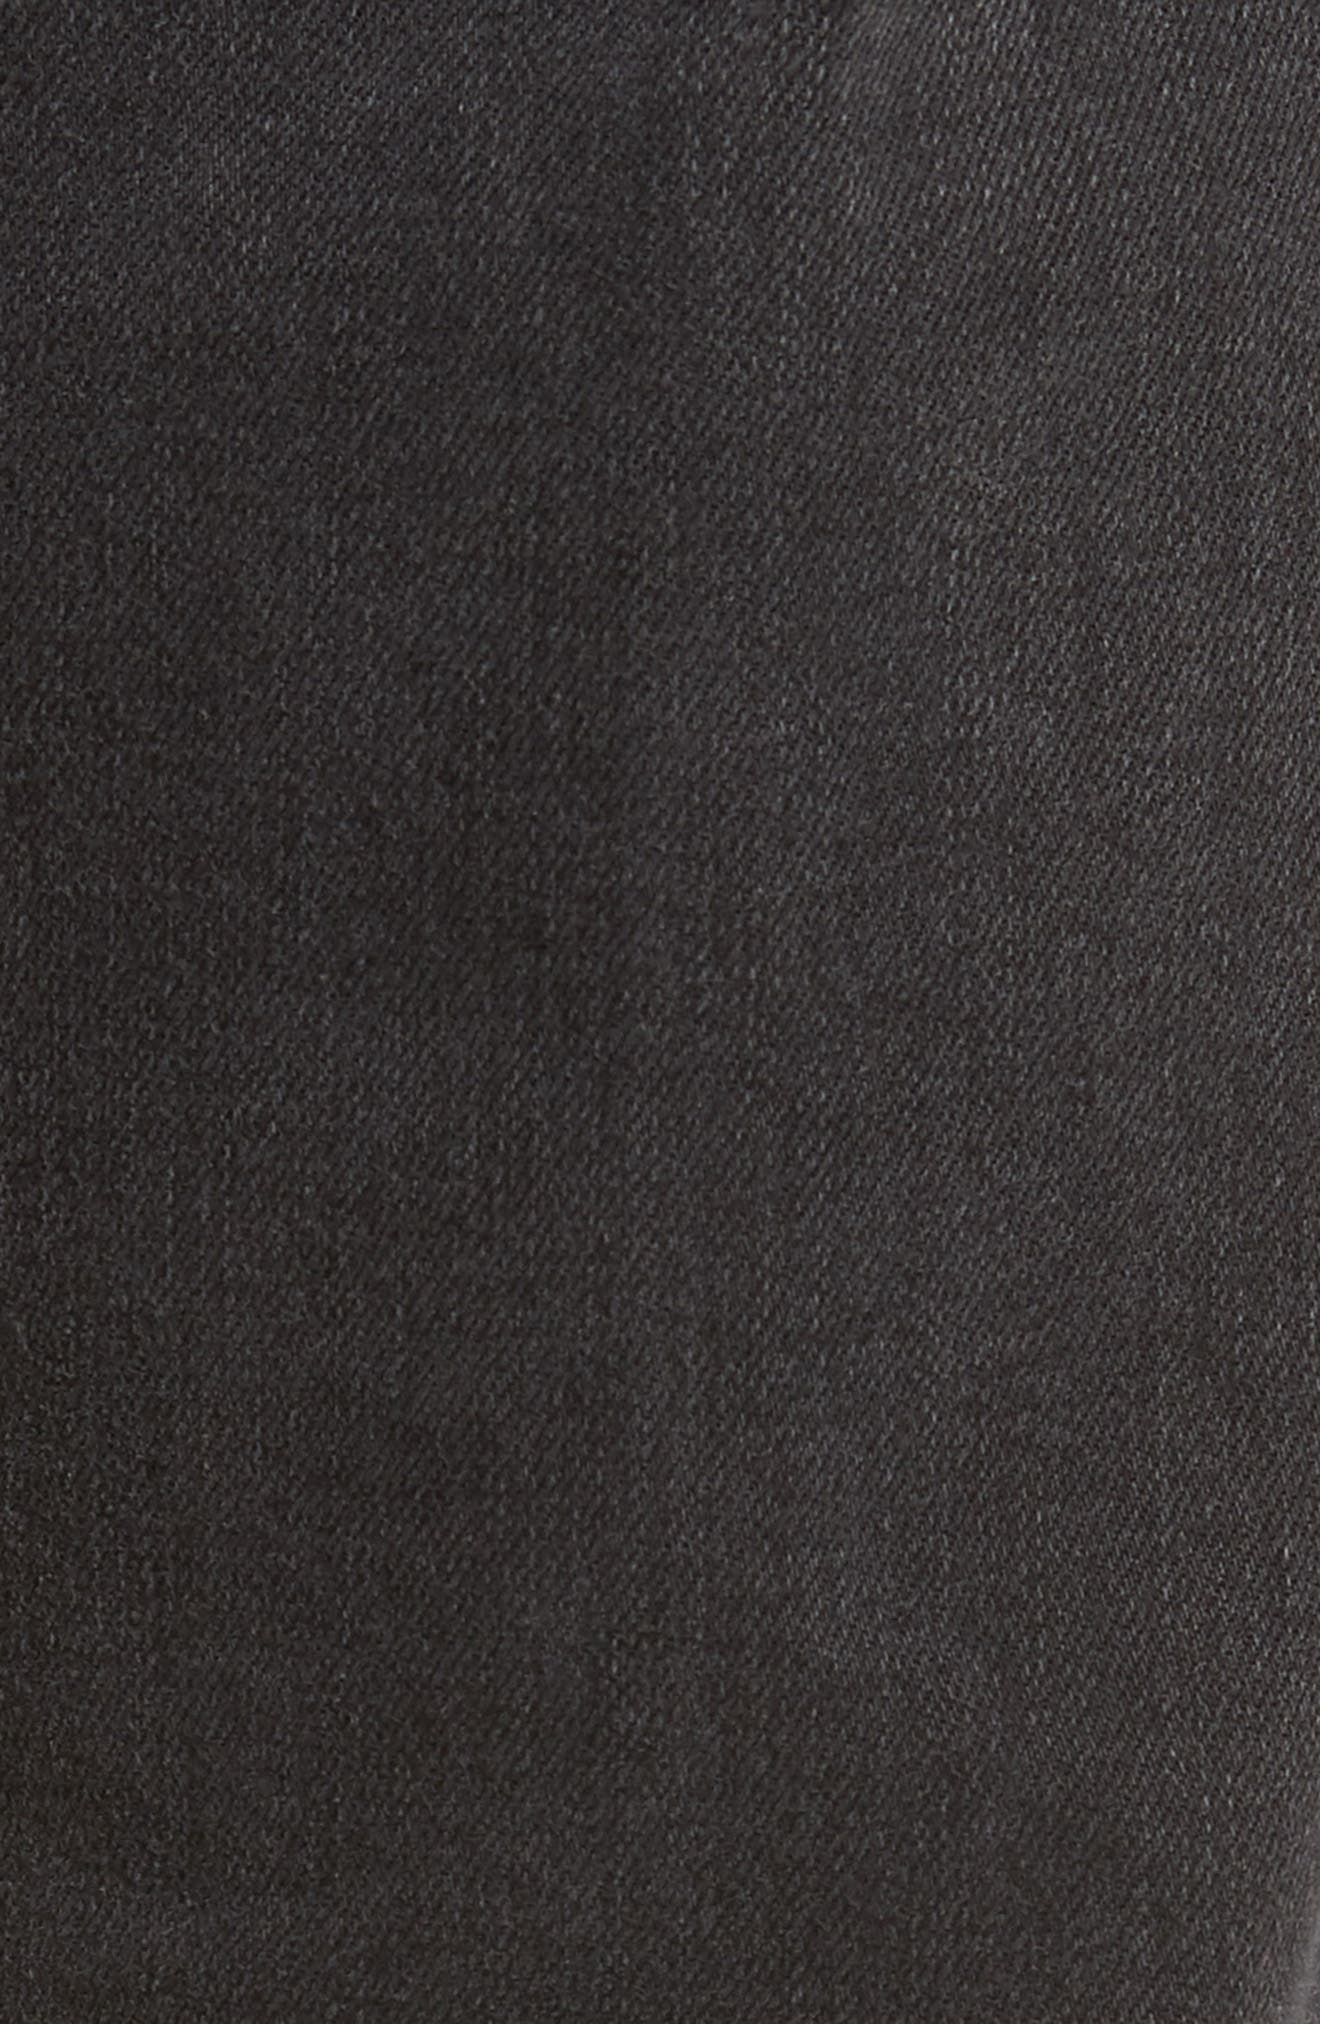 L'Homme Straight Leg Jeans,                             Alternate thumbnail 5, color,                             FADE TO GREY